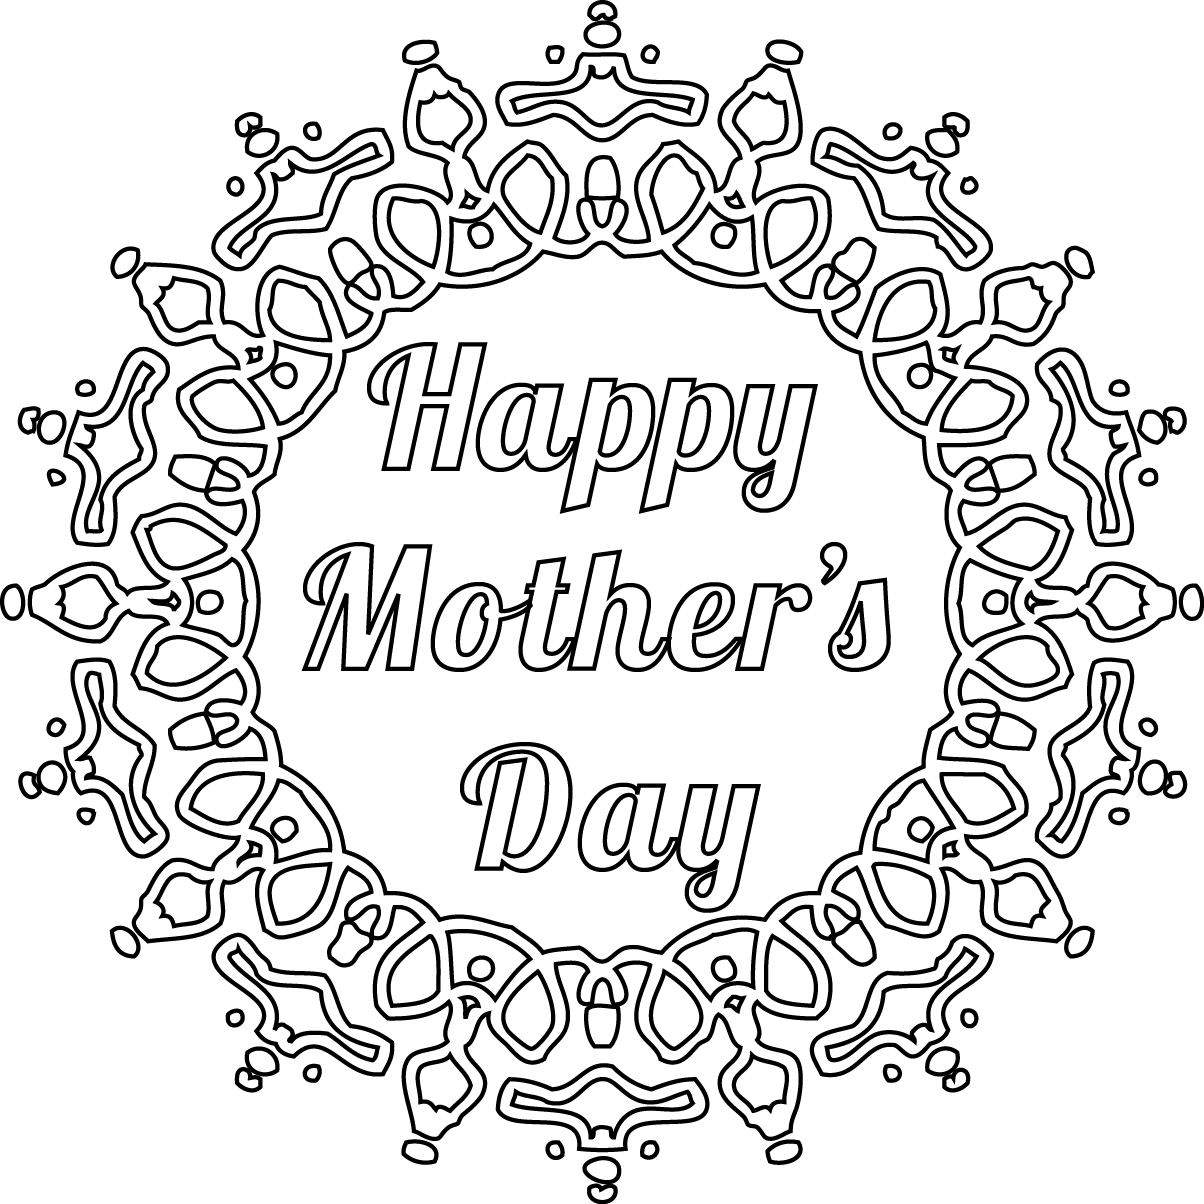 Free printable coloring pages mothers day - Free Printable Sentiment For Your Mother S Day Cards Brunch Ideascoloring Pages